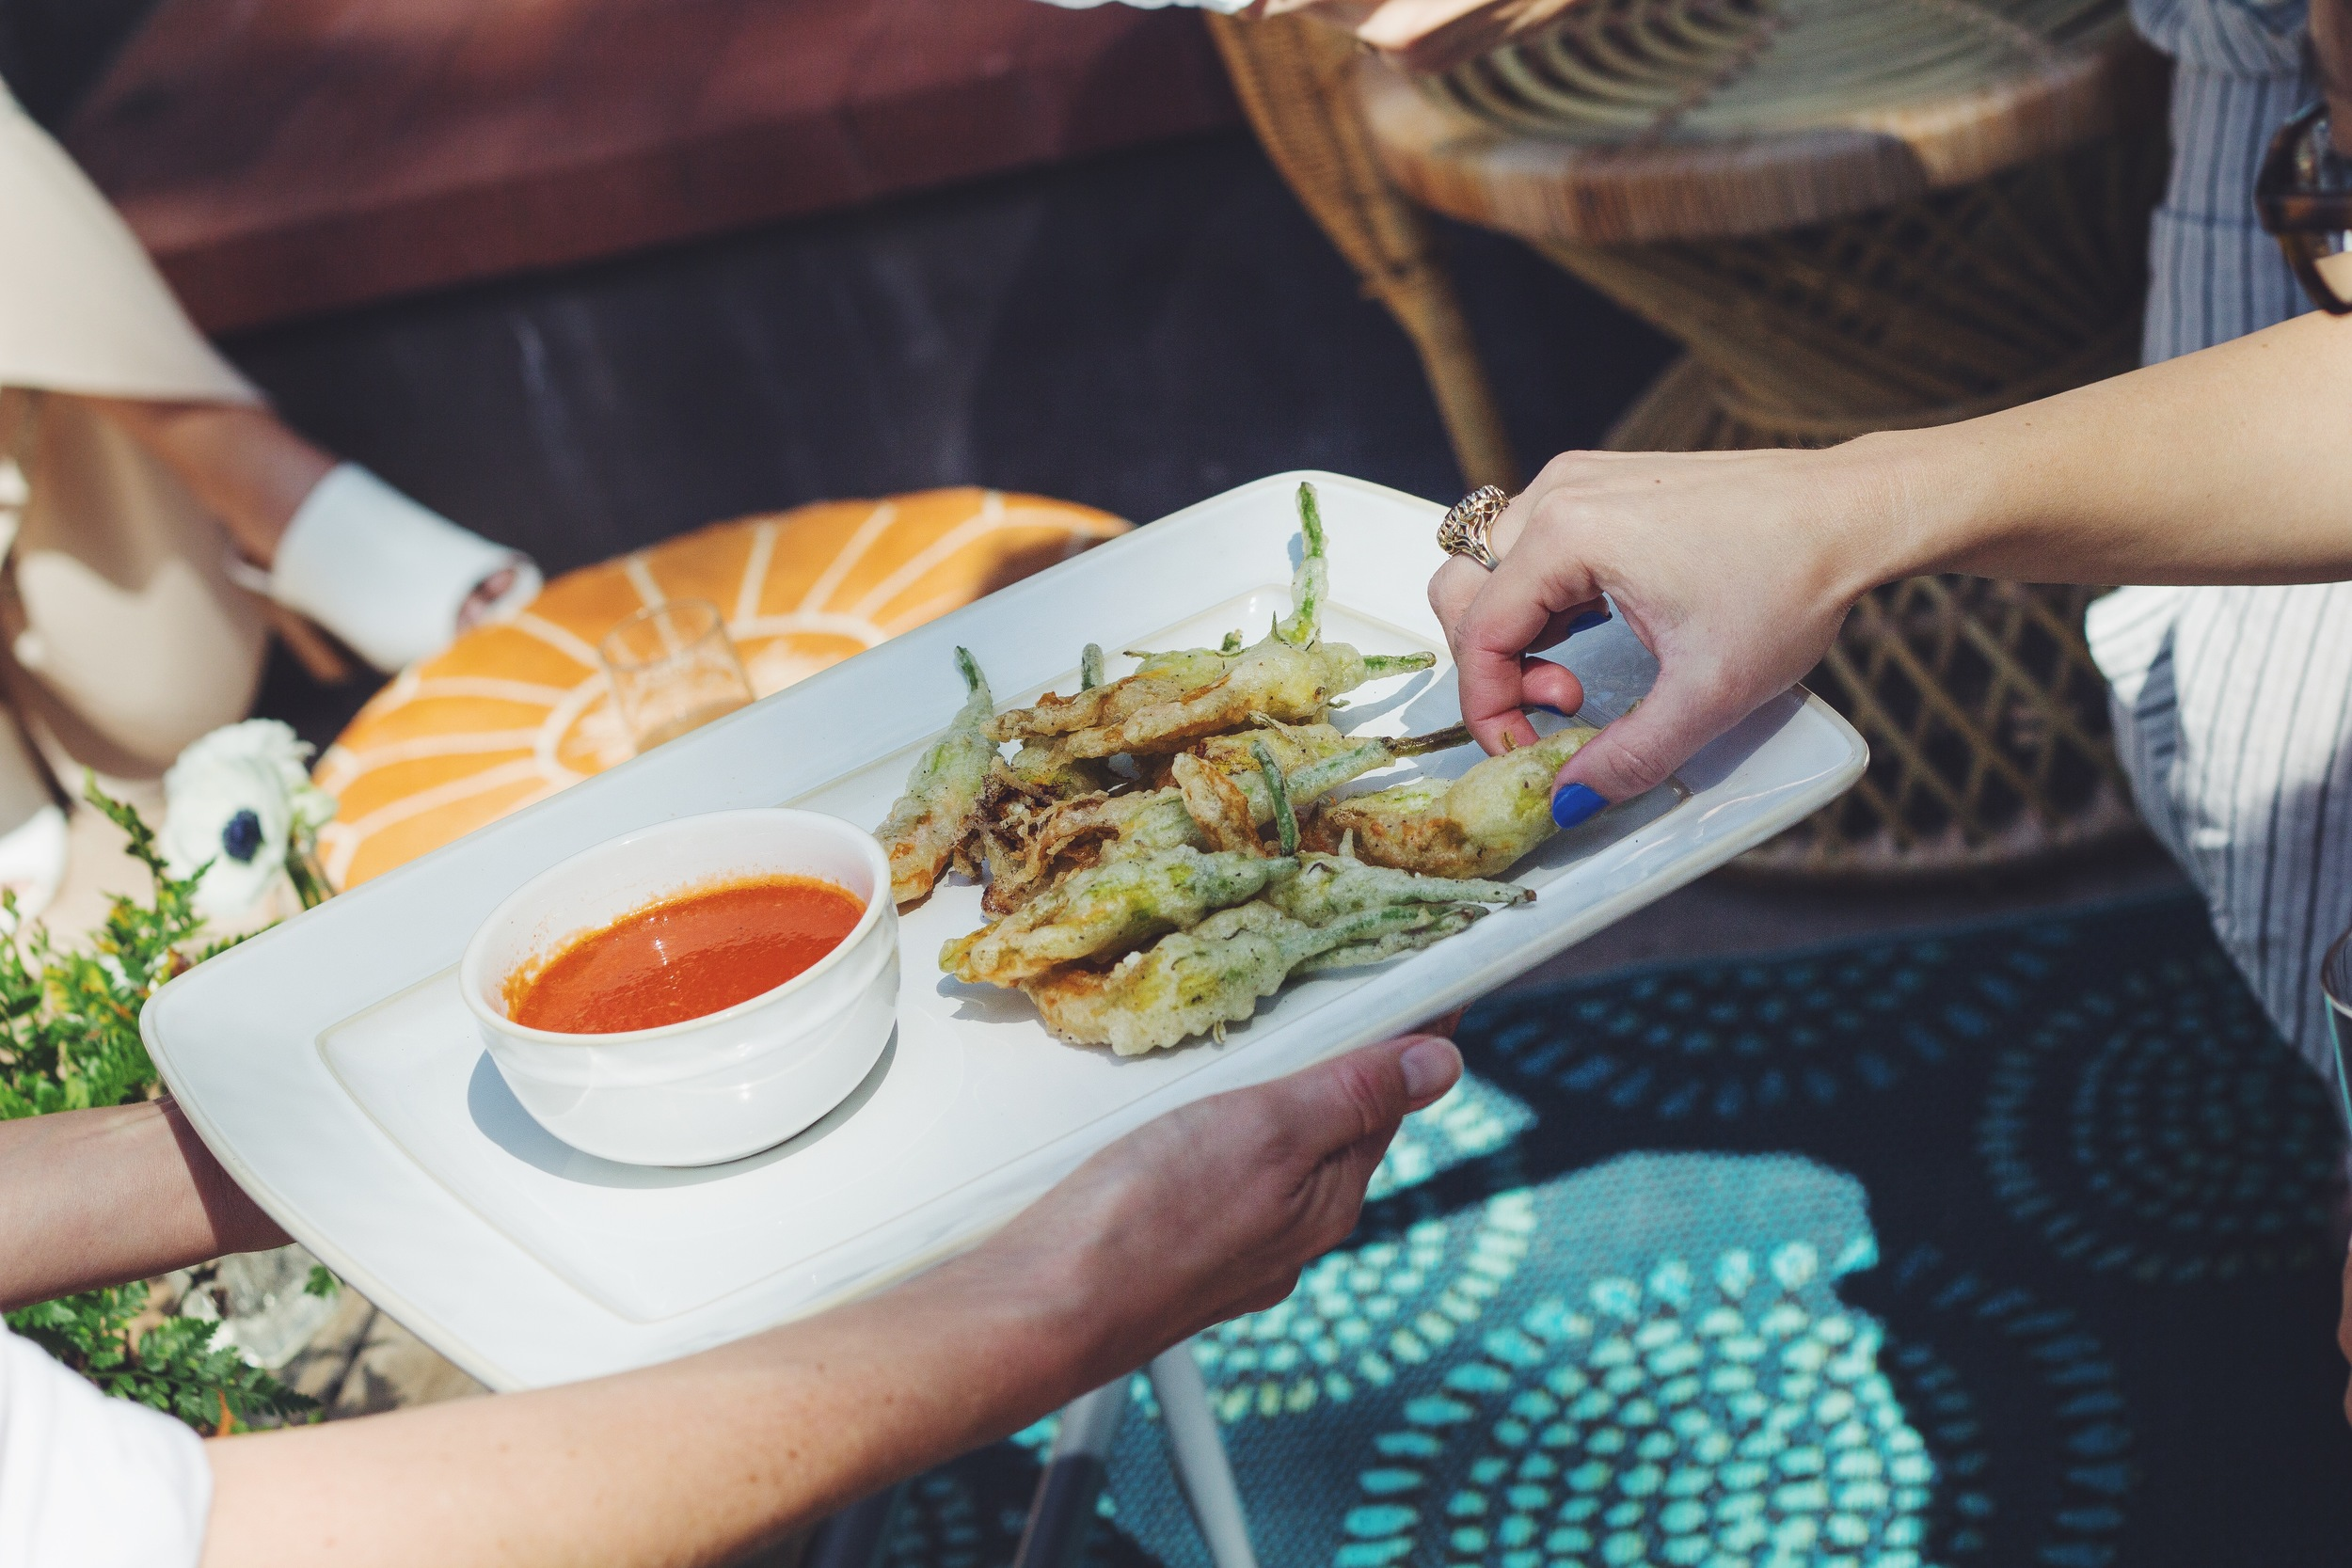 Fried Zucchini Blossoms. I could not get enough of this!